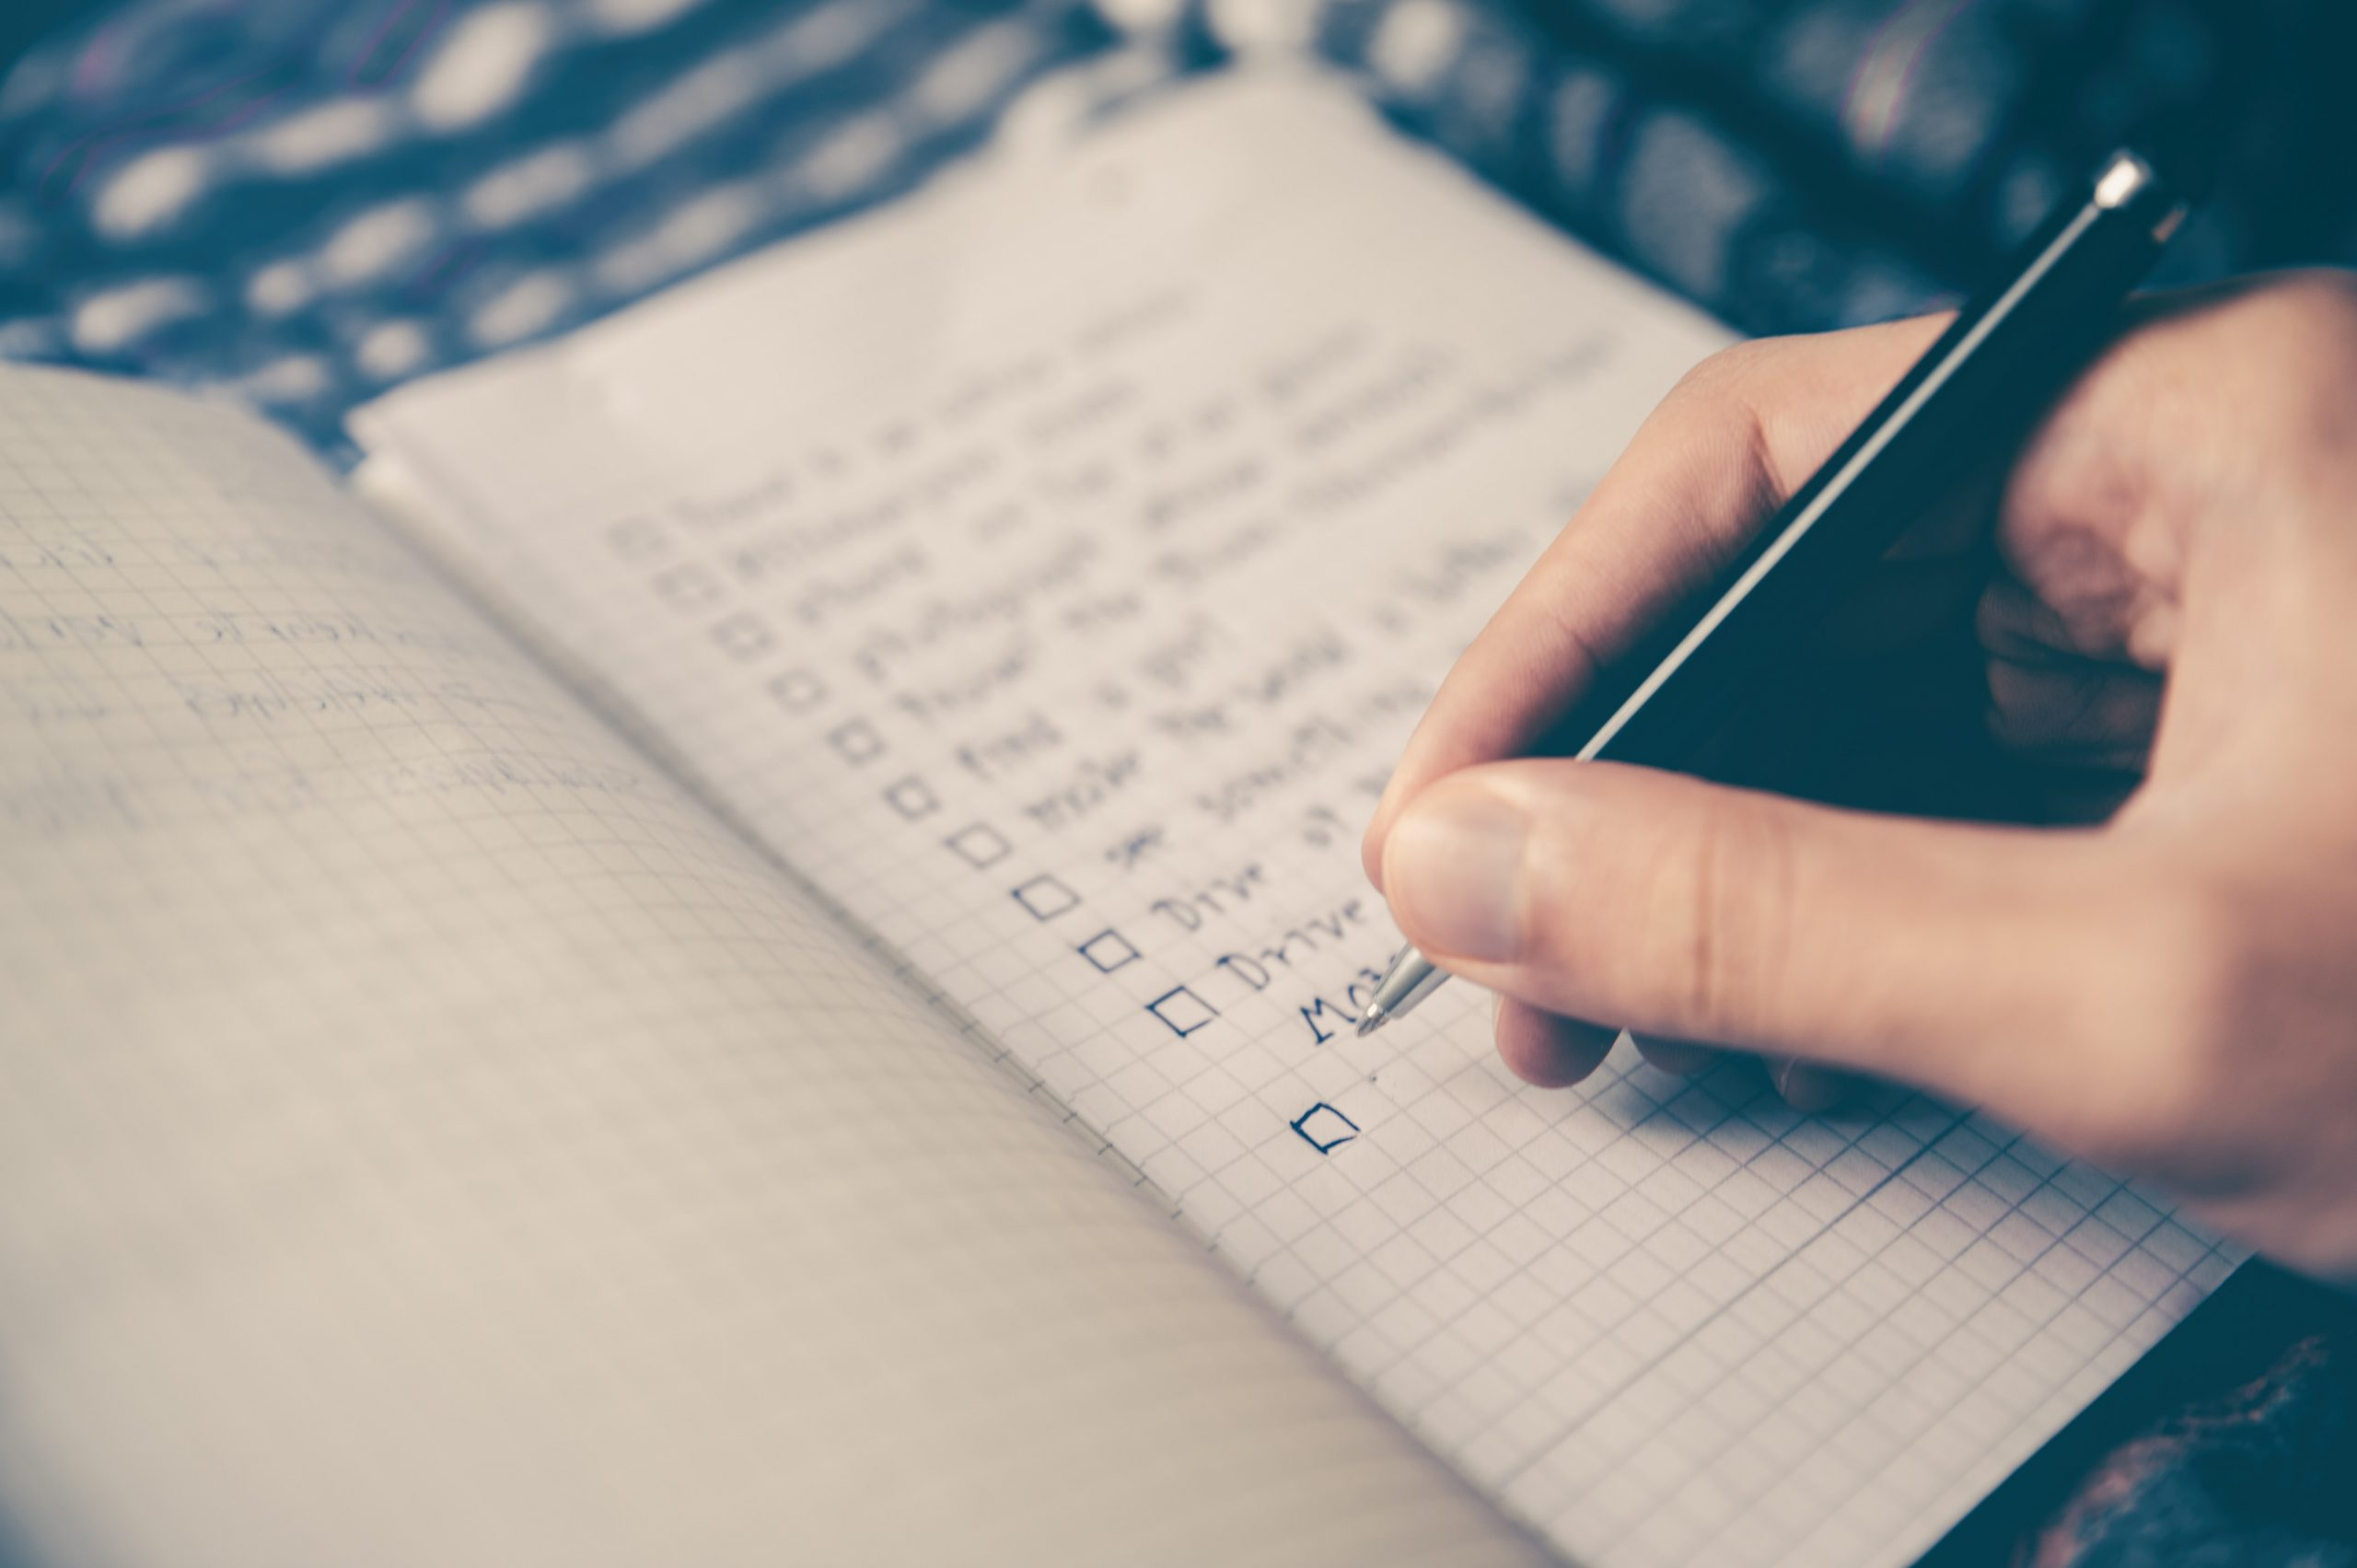 person's hand writing a checklist on a notebook